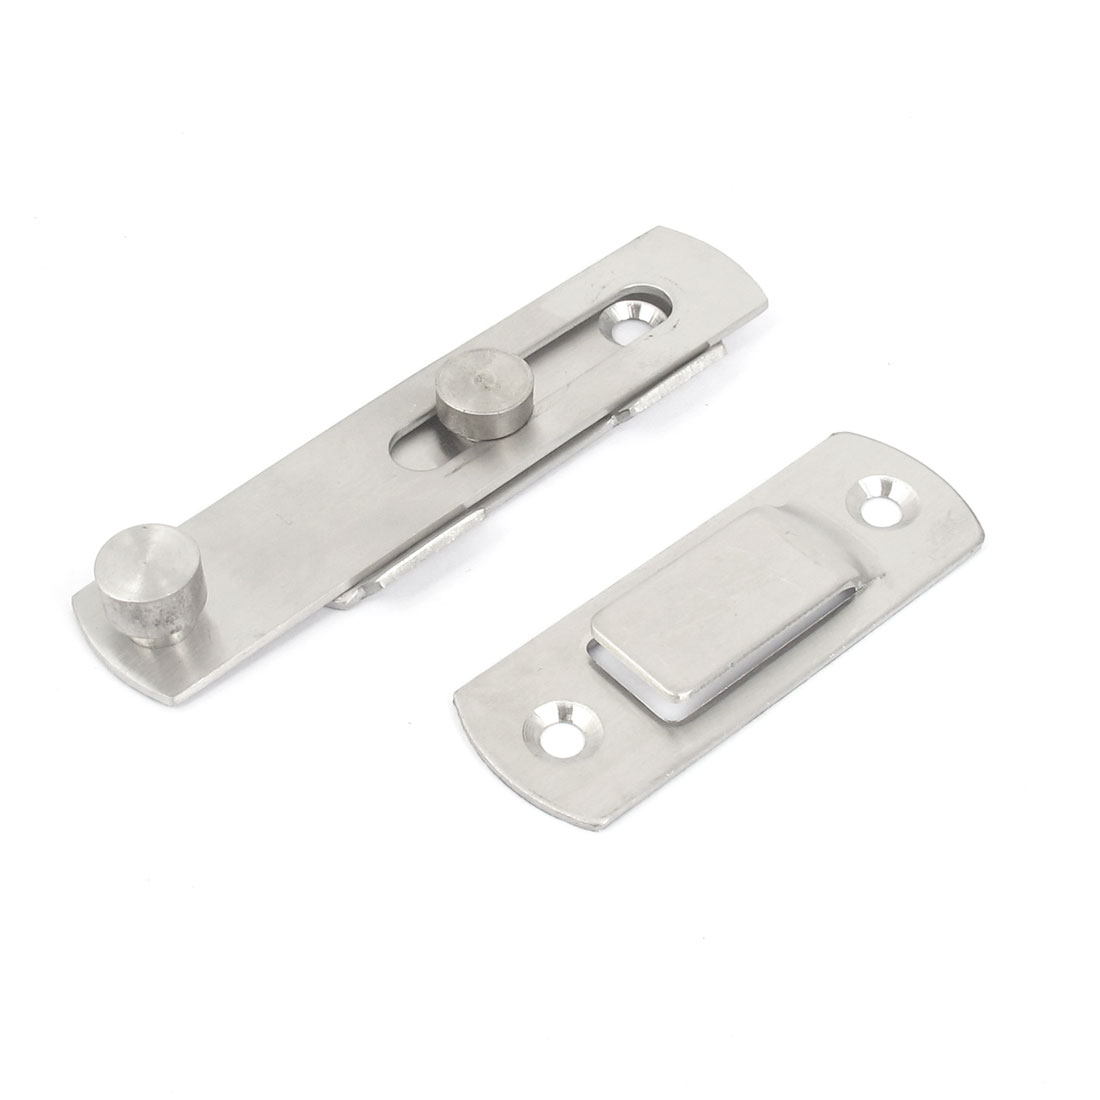 "Cupboard Drawer Screw Fixing Door Hasp Catch Clasp Silver Tone 4.6"" Long"